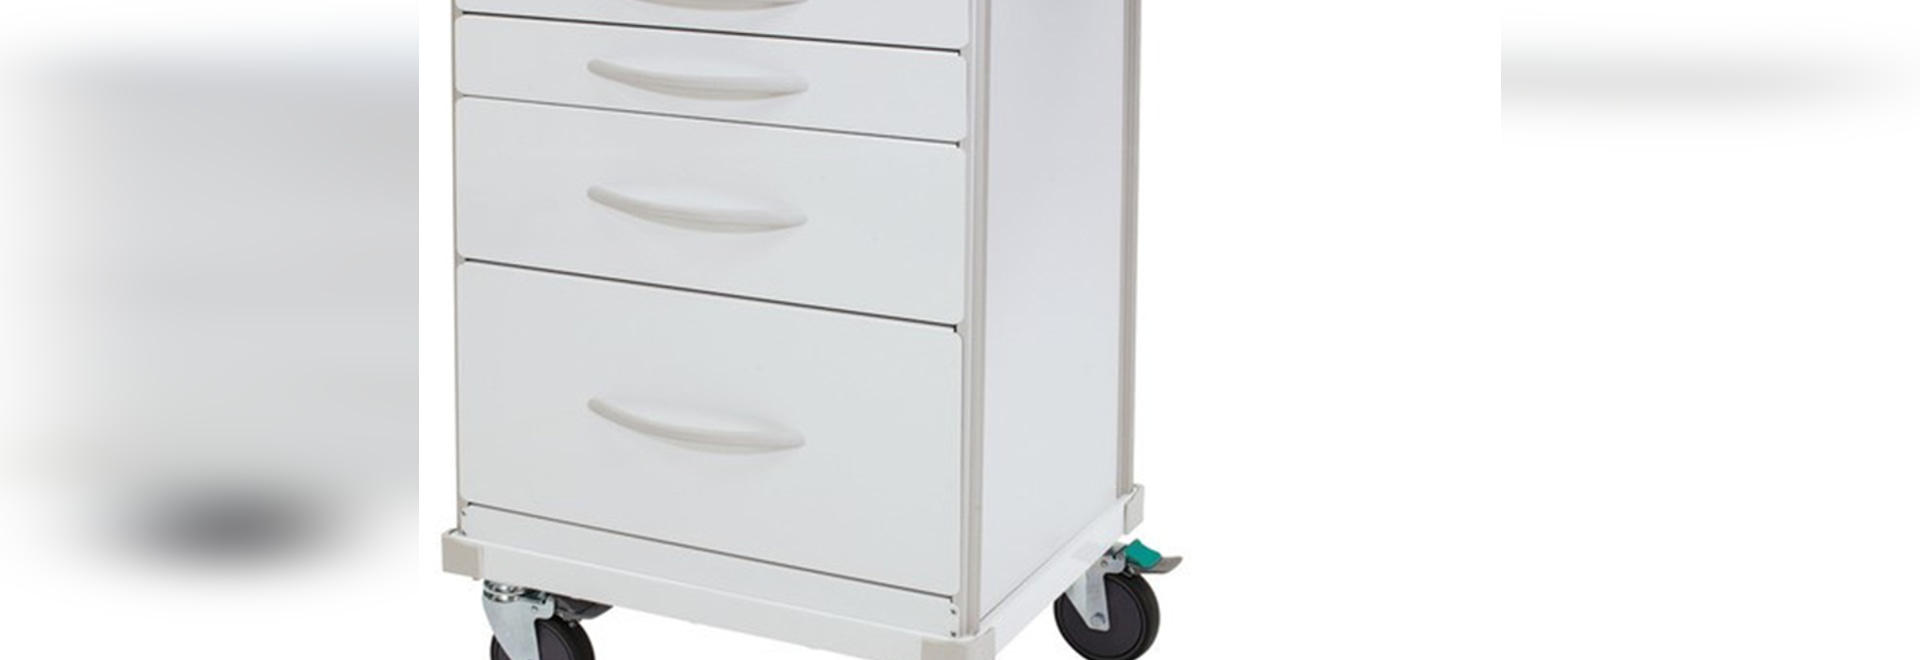 InnerSpace Launches Series Of Carts With Improved Materials And Enhanced Security Features